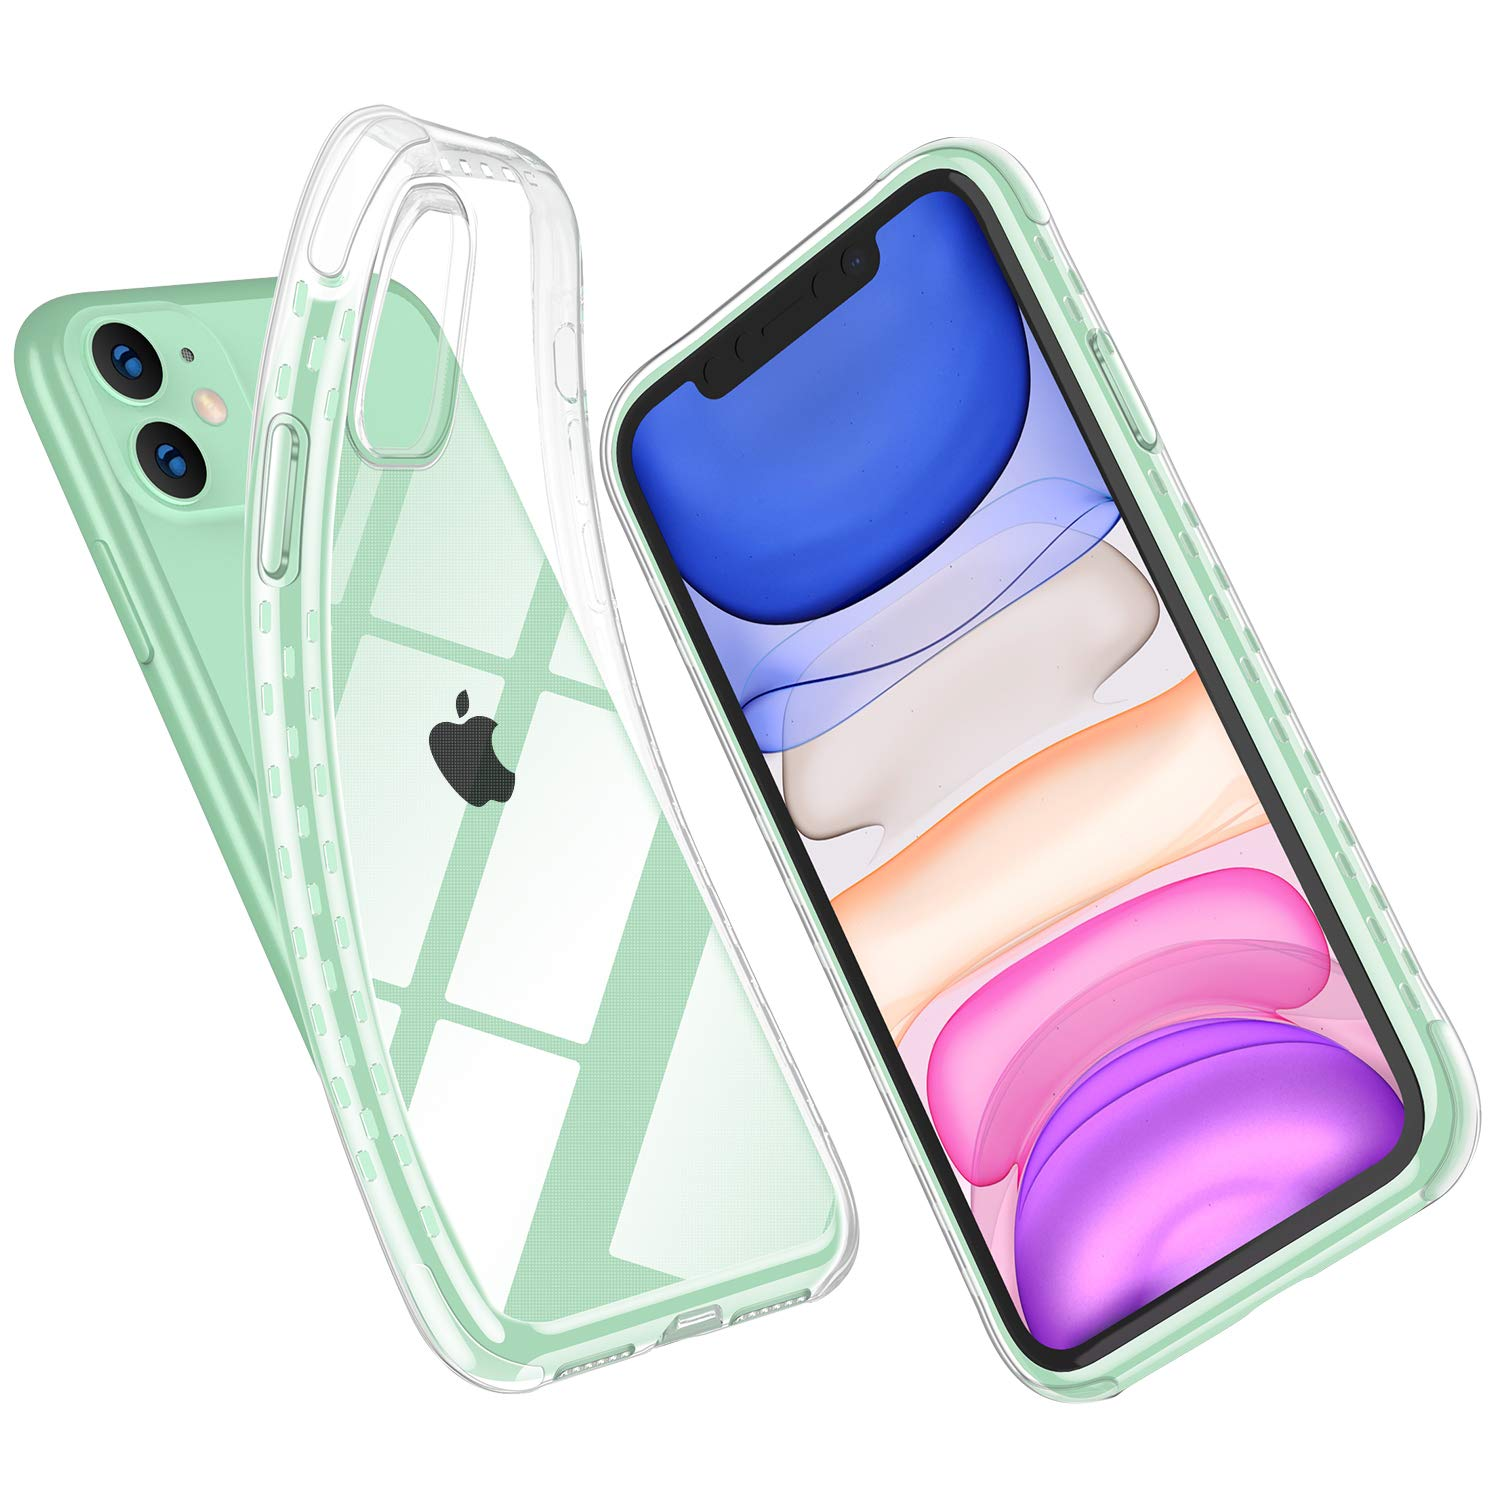 SUPWALL iPhone 11 Case, Clear Case Full Body Shockproof Protection Soft Scratch-Resistant TPU Anti-Yellow Support Wireless Charging Cyrstal Case Cover for iPhone 11 6.1 inch, Clear